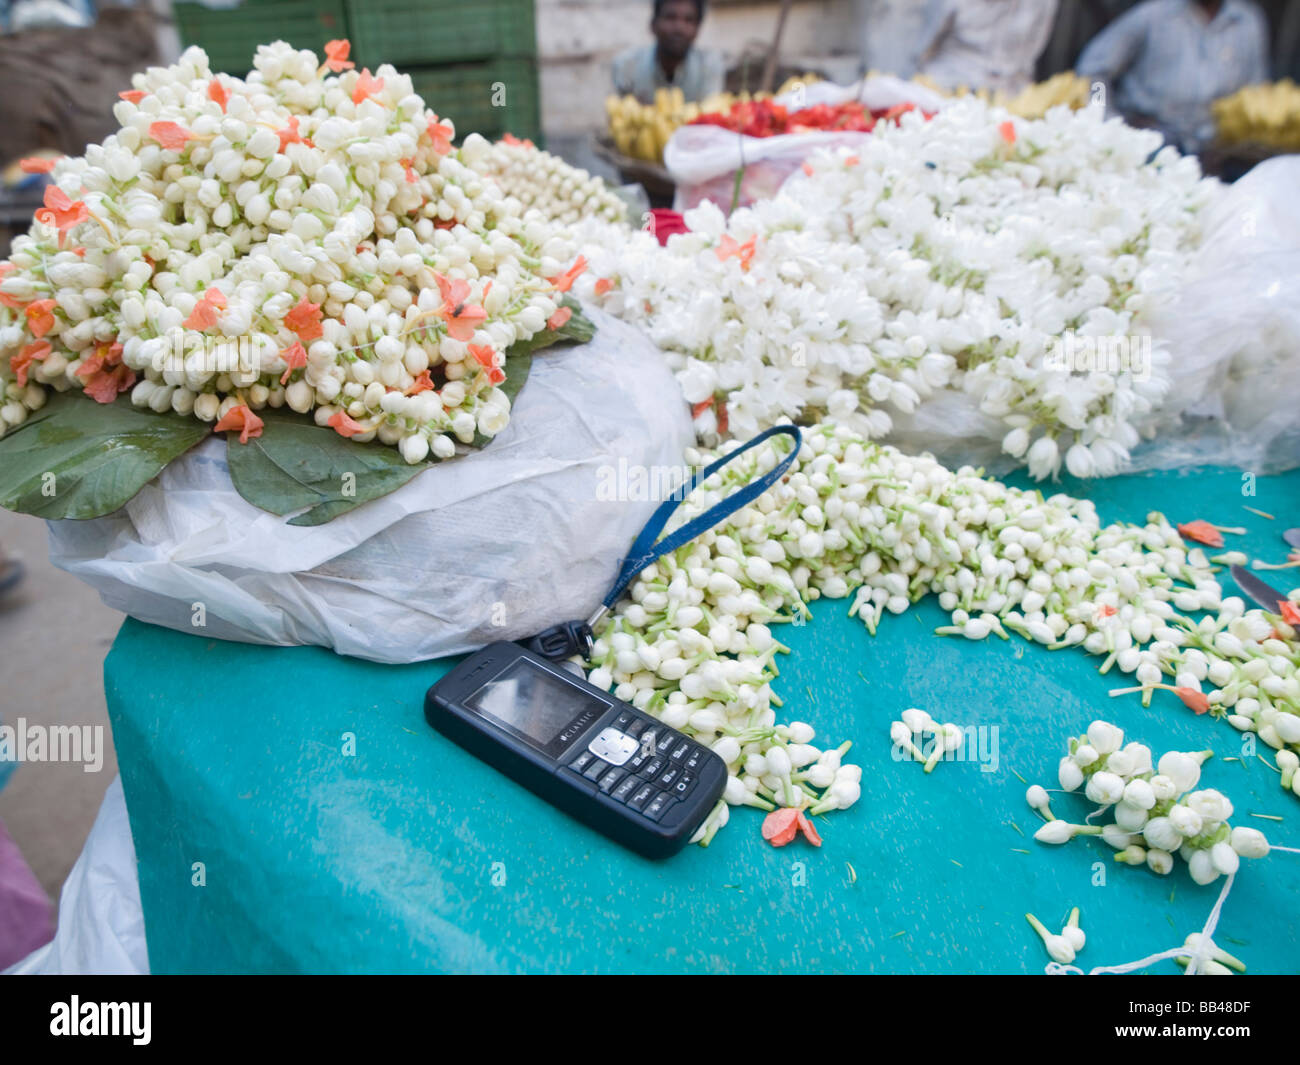 Cell phone used by street level flower seller in Bangalore